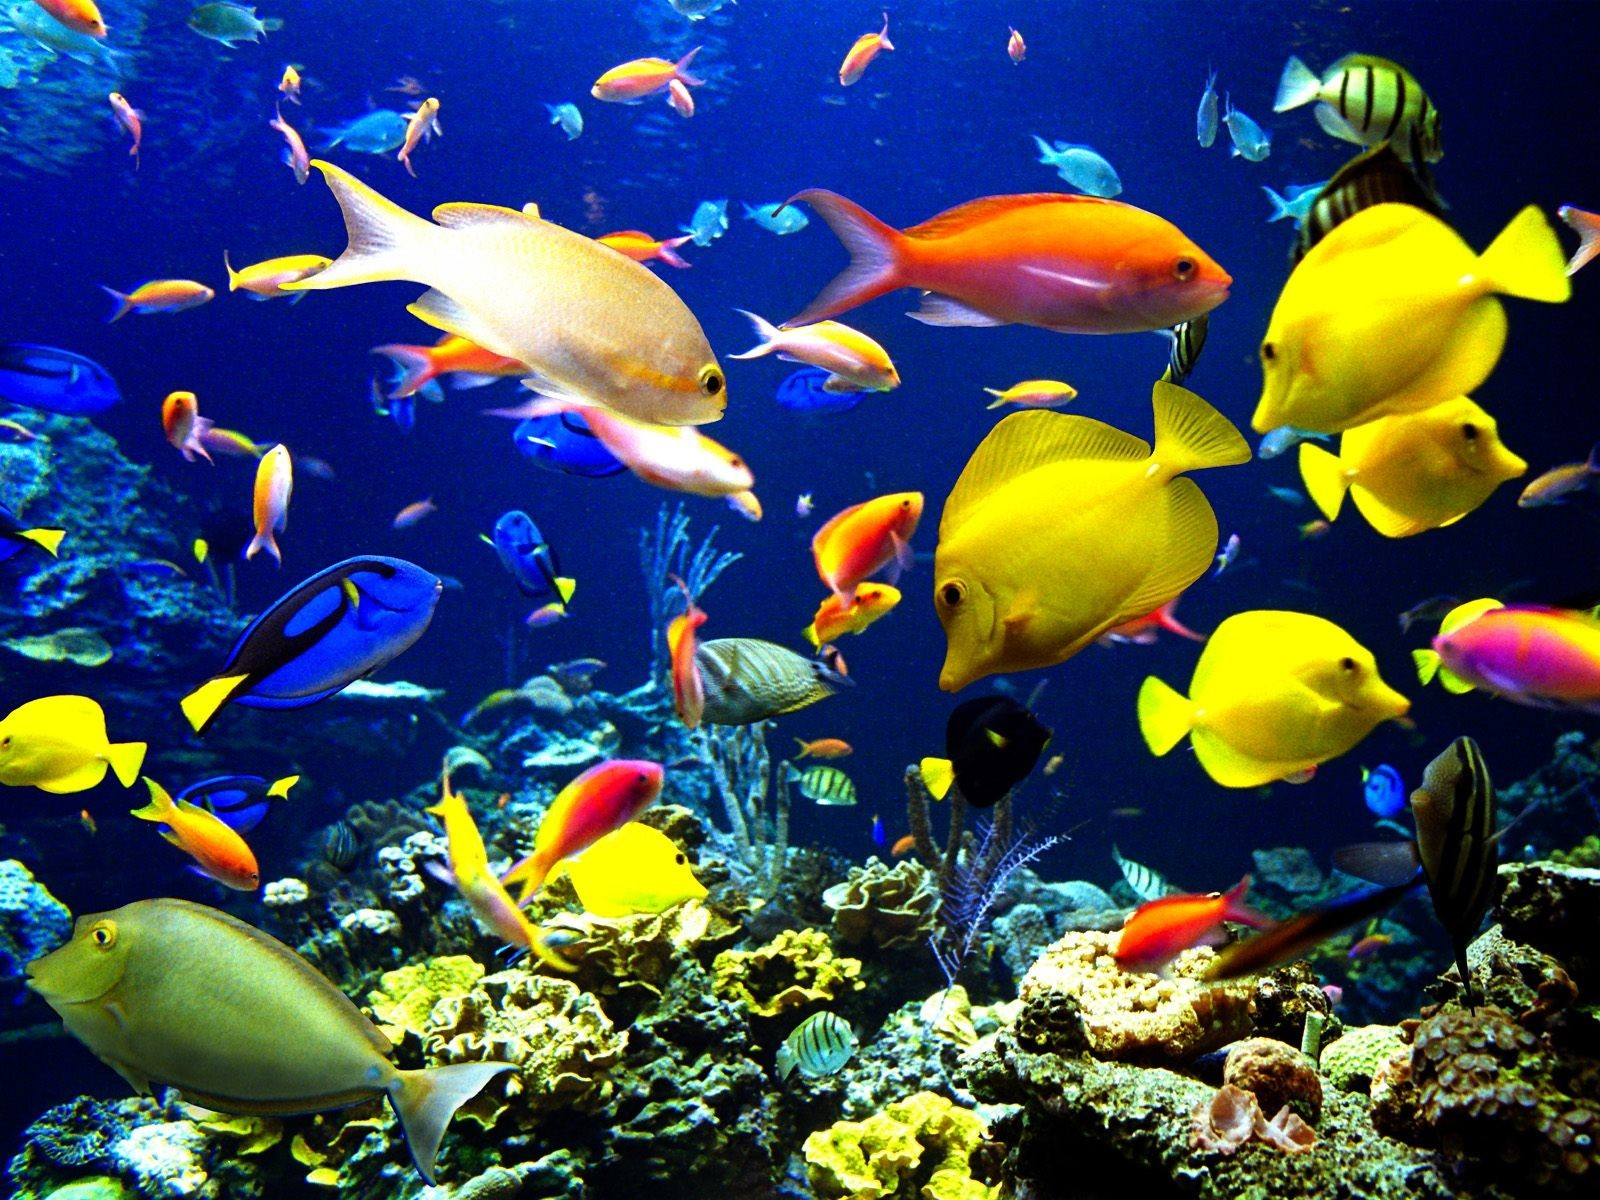 """Underwater Tropical Fish """"The Crumbs On The P..."""